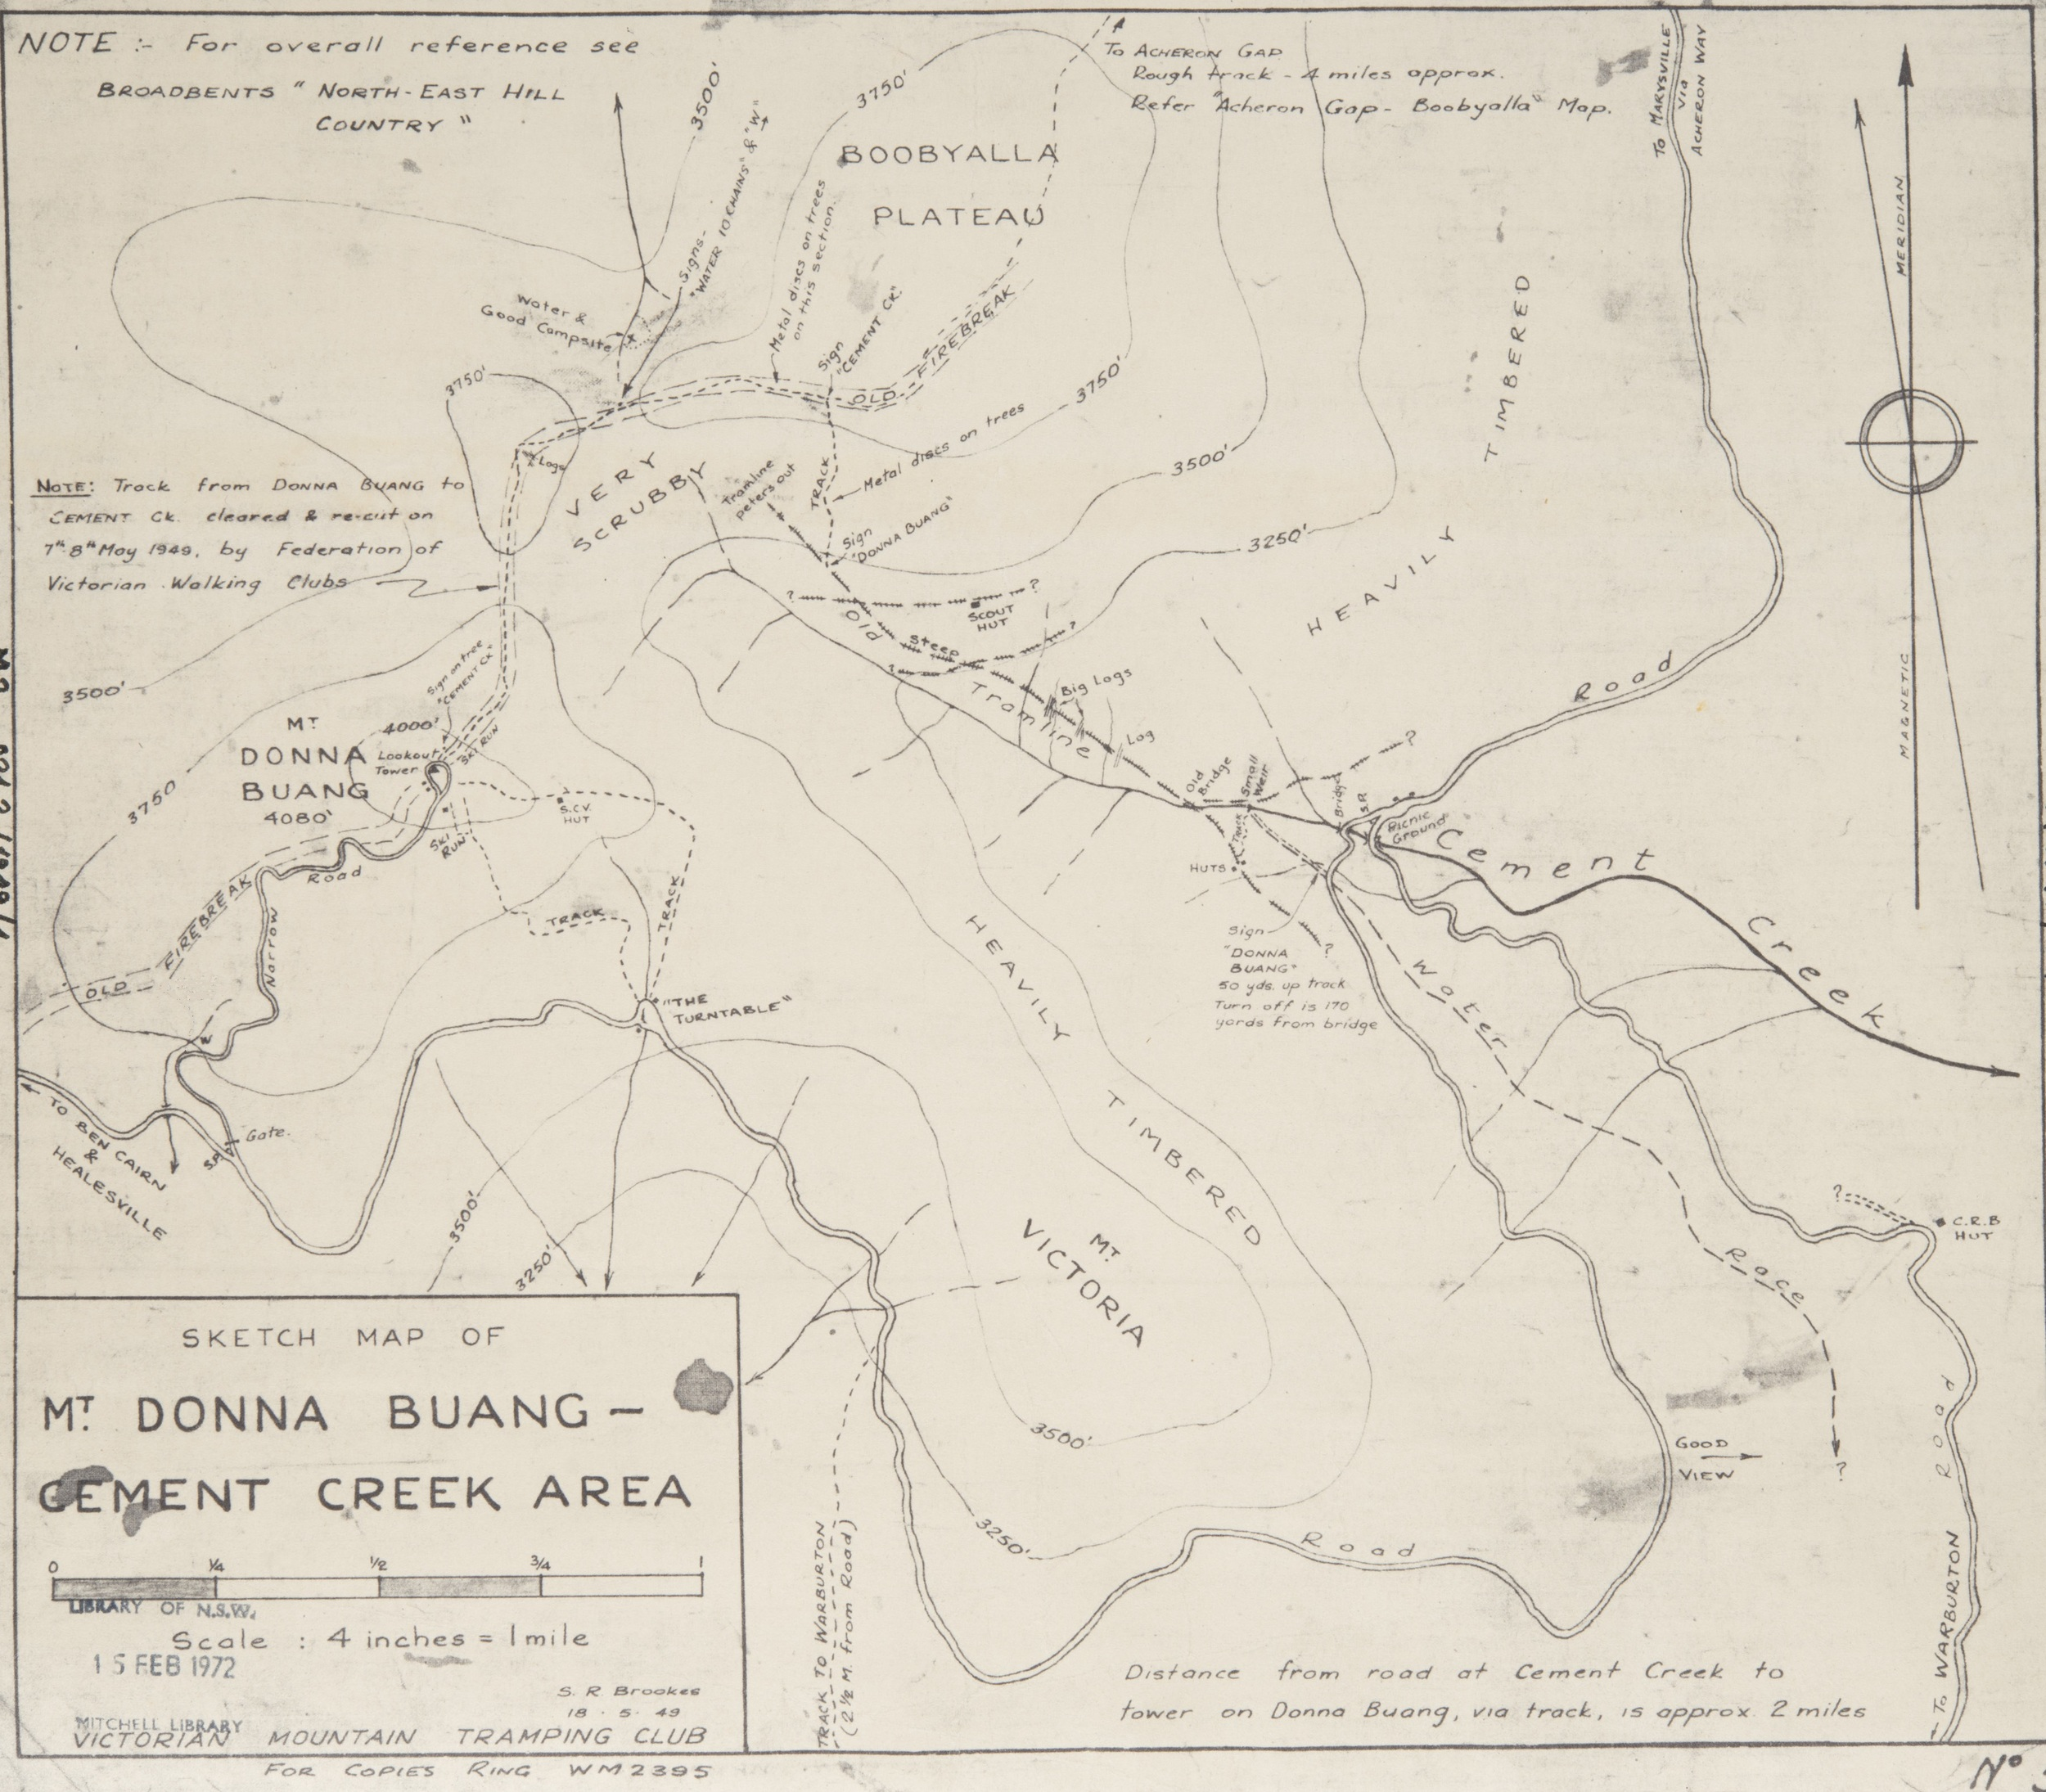 1949 map of Mt. Donna Buang. © Stuart Brookes, used with his permission. .